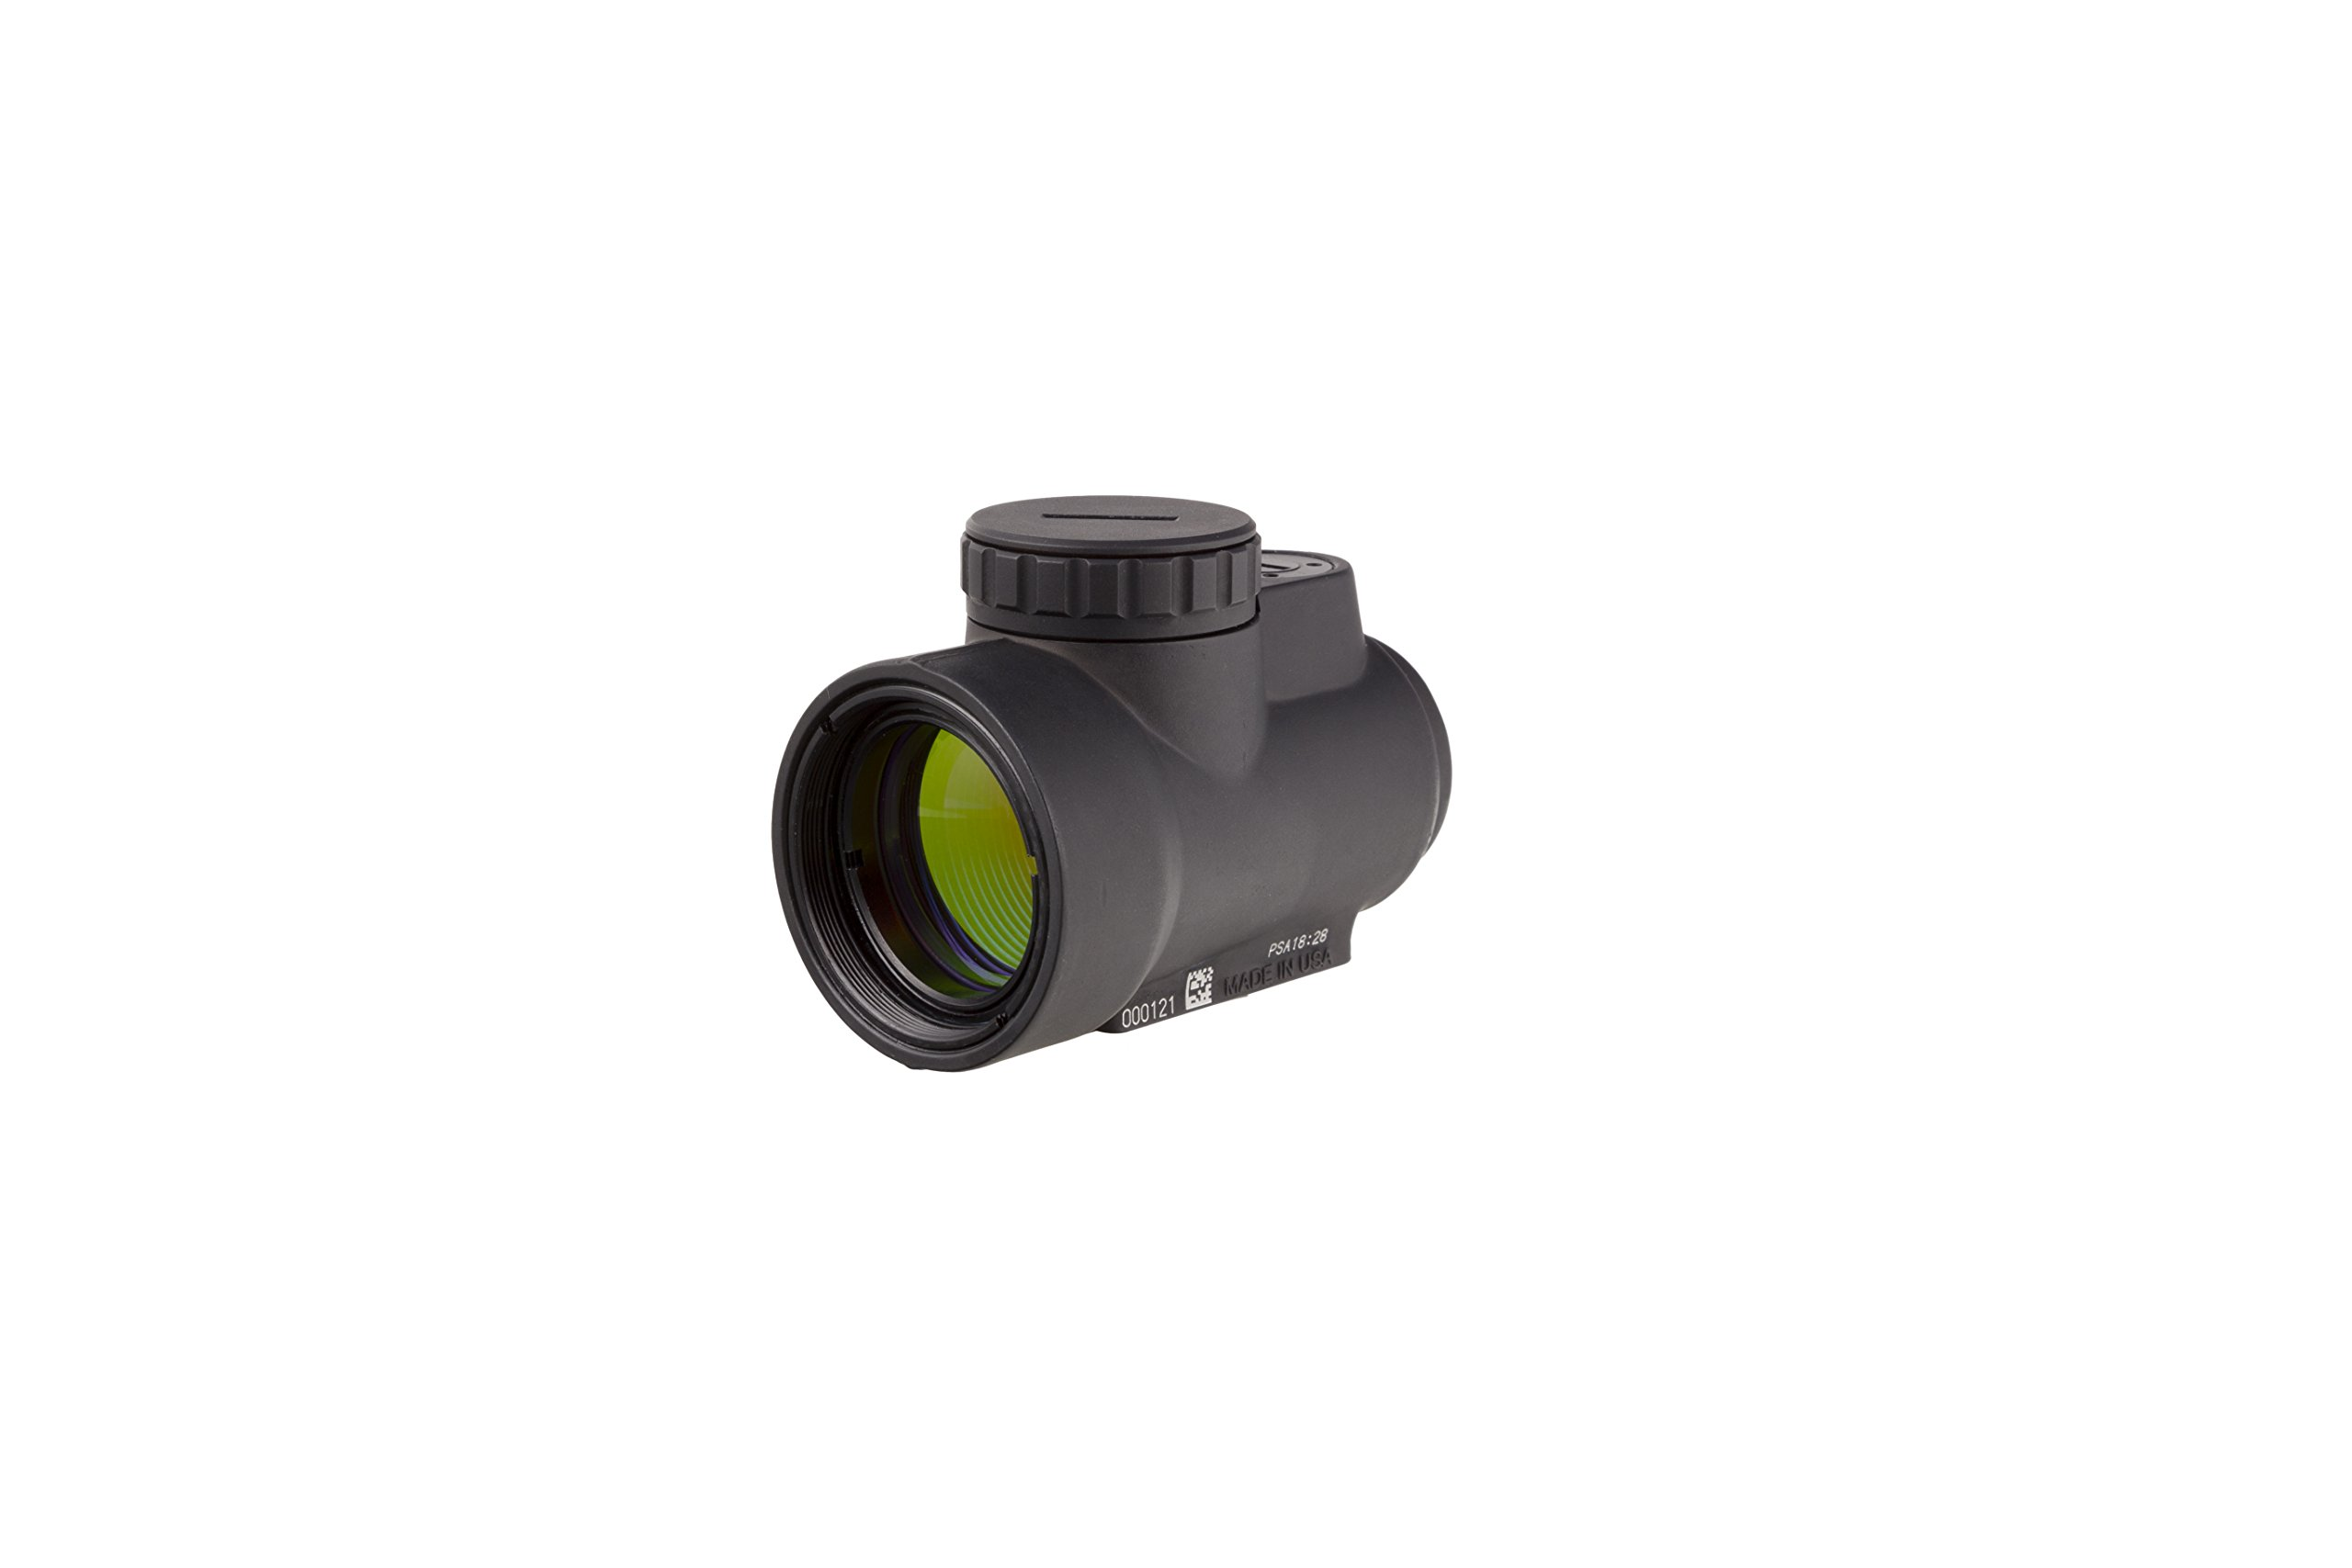 Trijicon MRO-C-2200003 1x25mm Miniature Rifle Optic (MRO) Riflescope with 2.0 MOA Adjustable Red Dot Reticle (Without Mount) by Trijicon (Image #5)